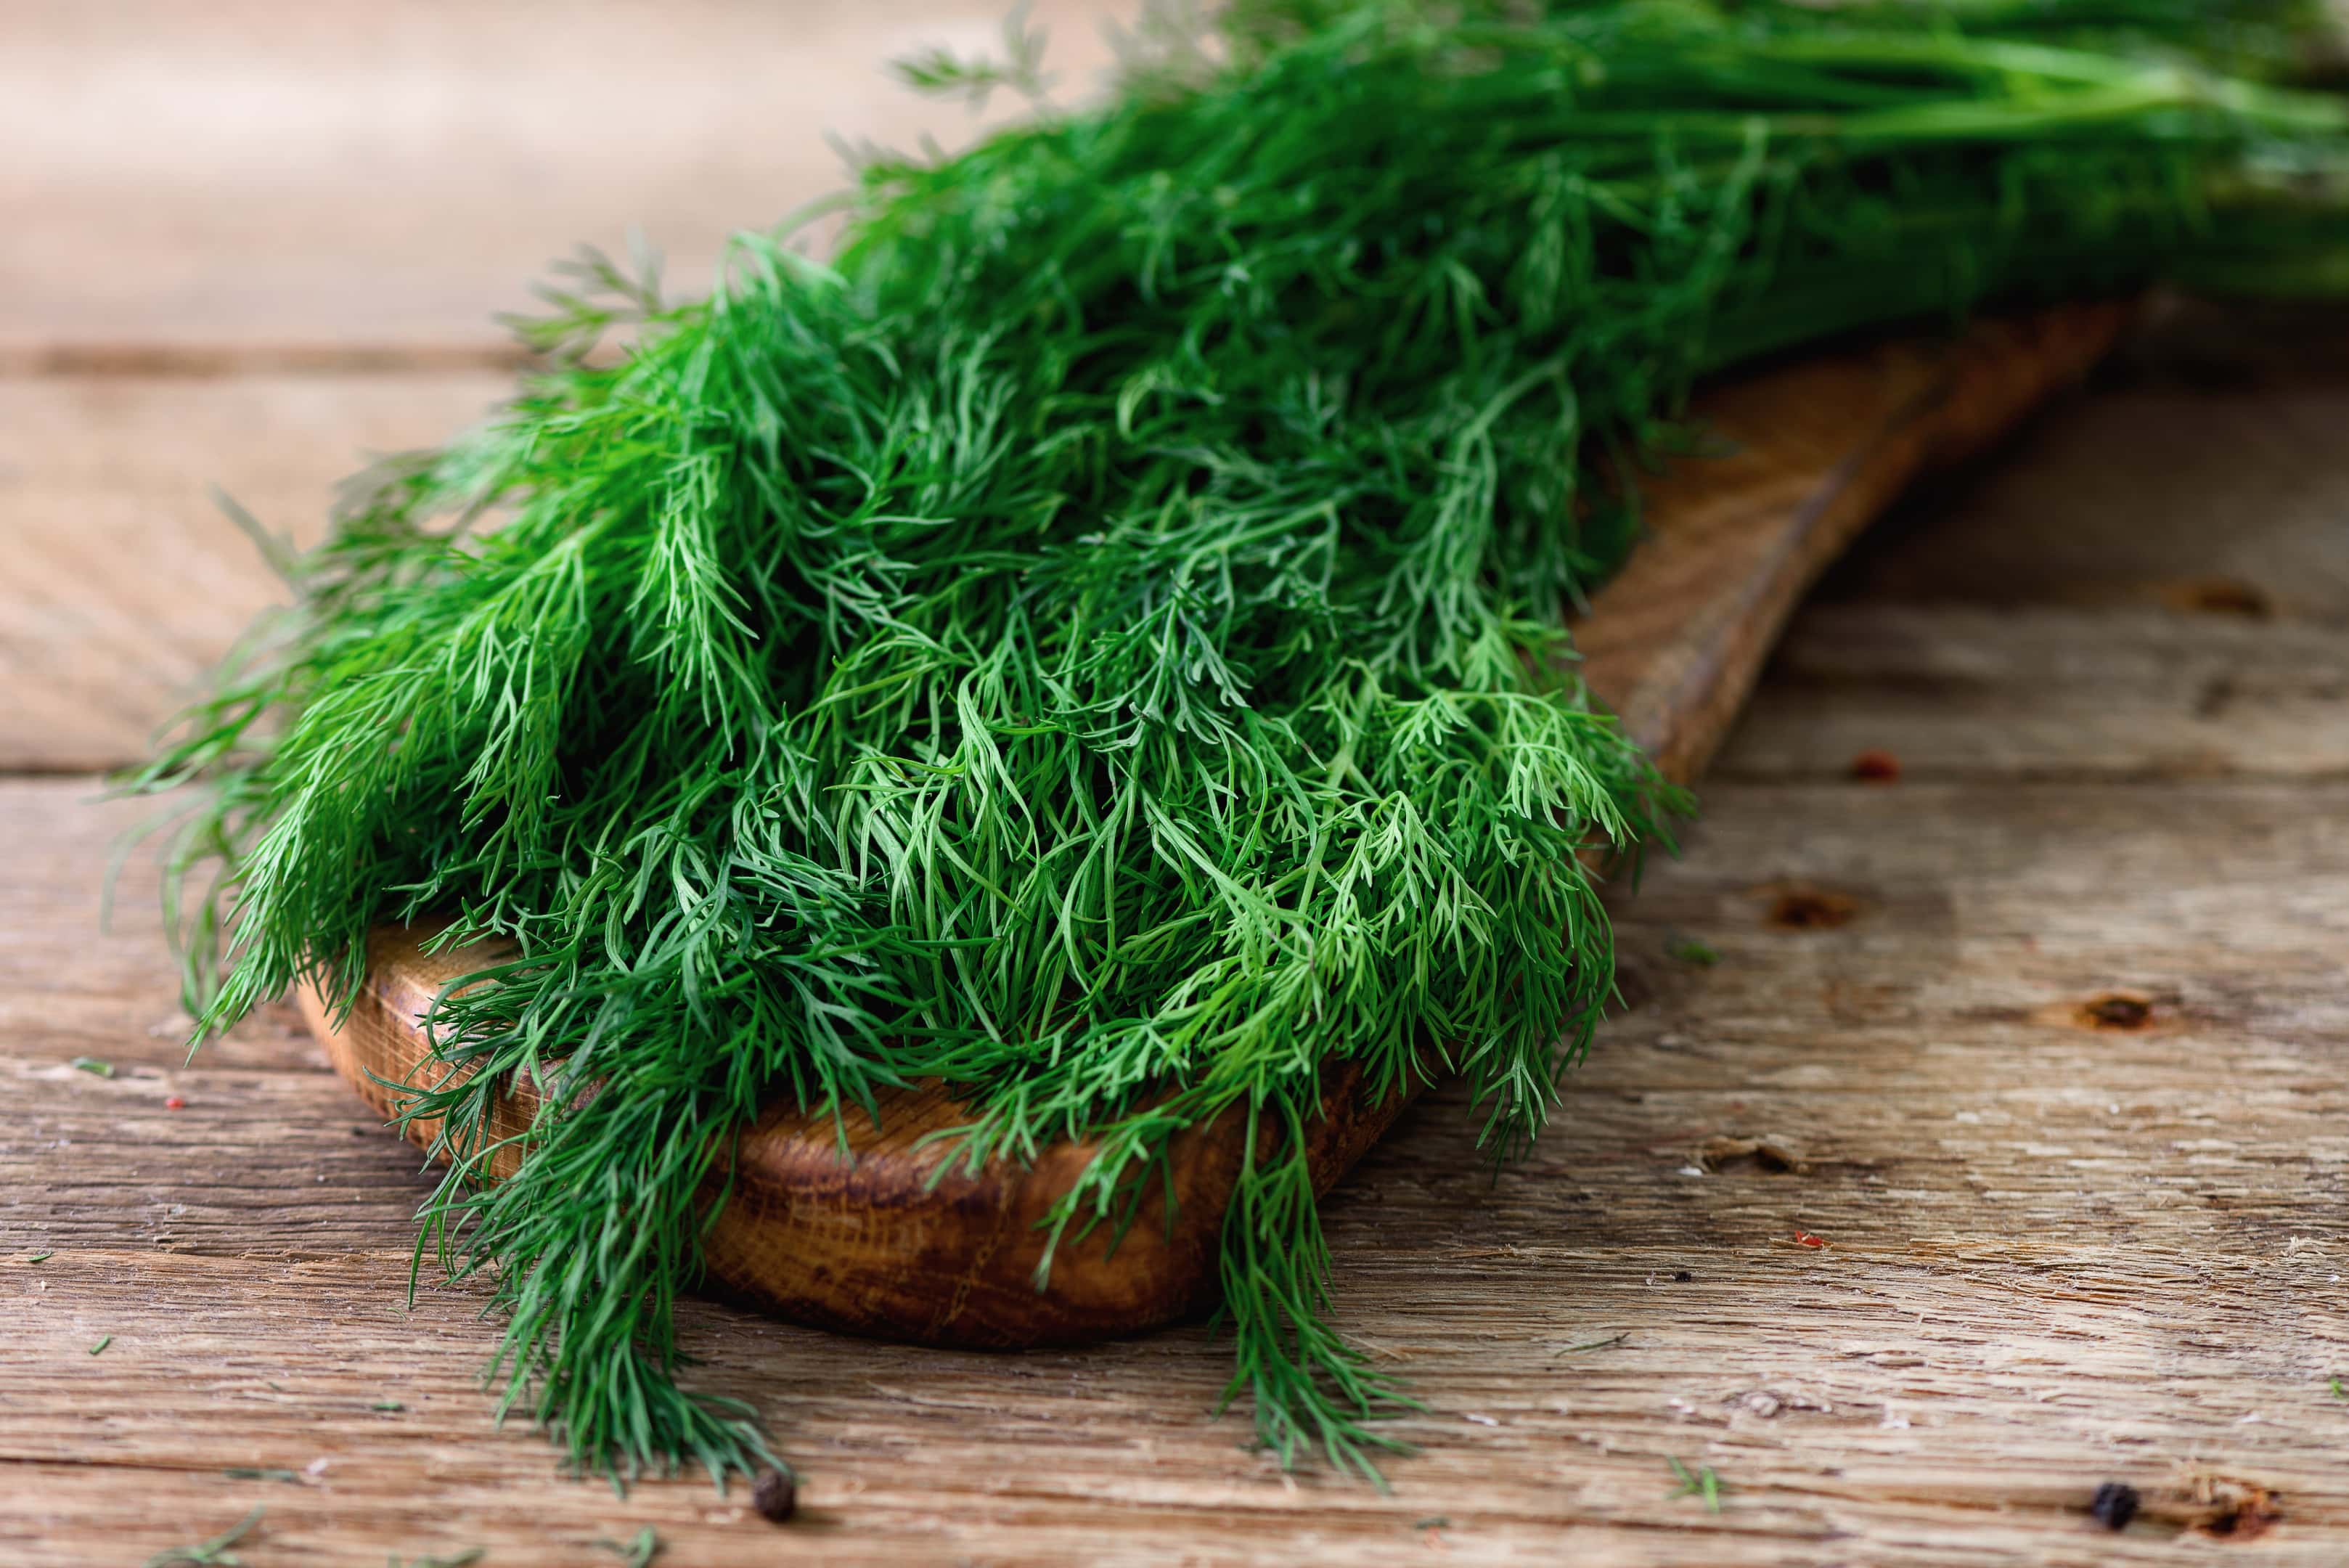 Fresh dill on wooden spoon